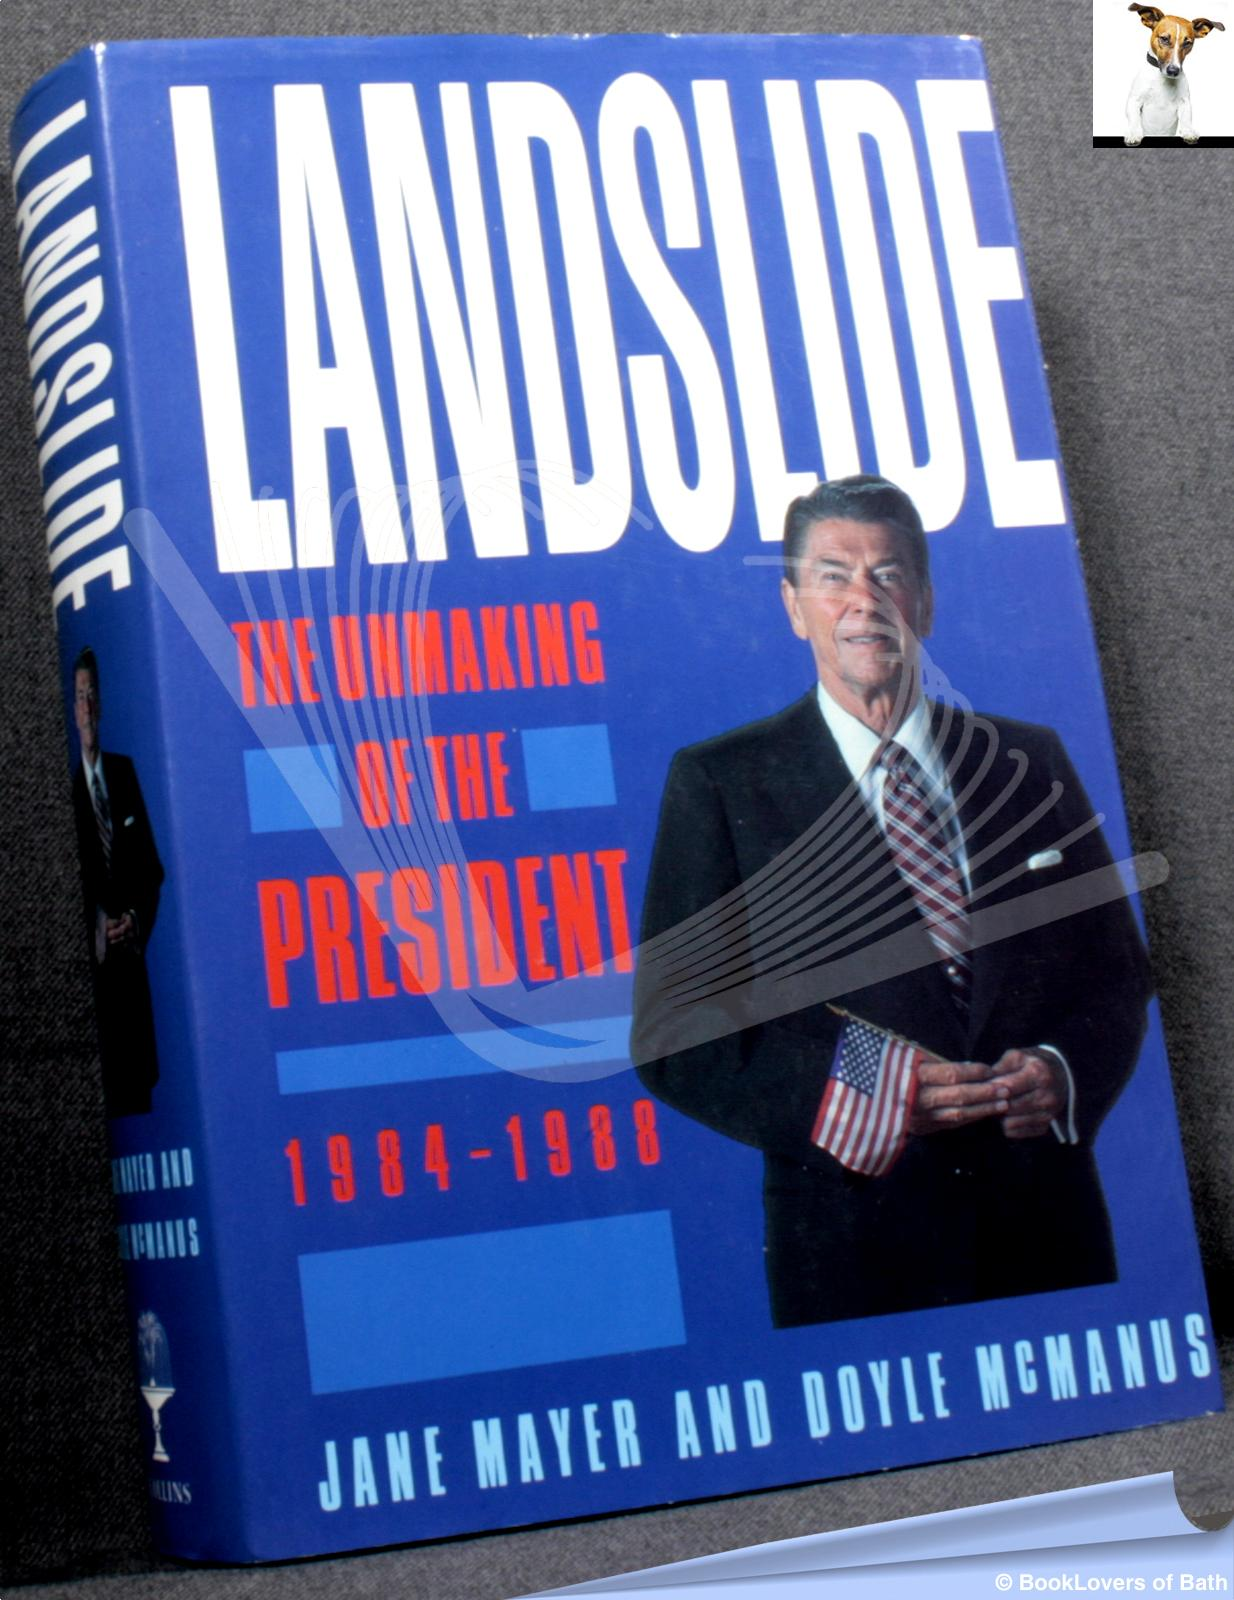 Landslide: The Unmaking of the President 1984 - 1988 - Jane Mayer; Doyle McManus;